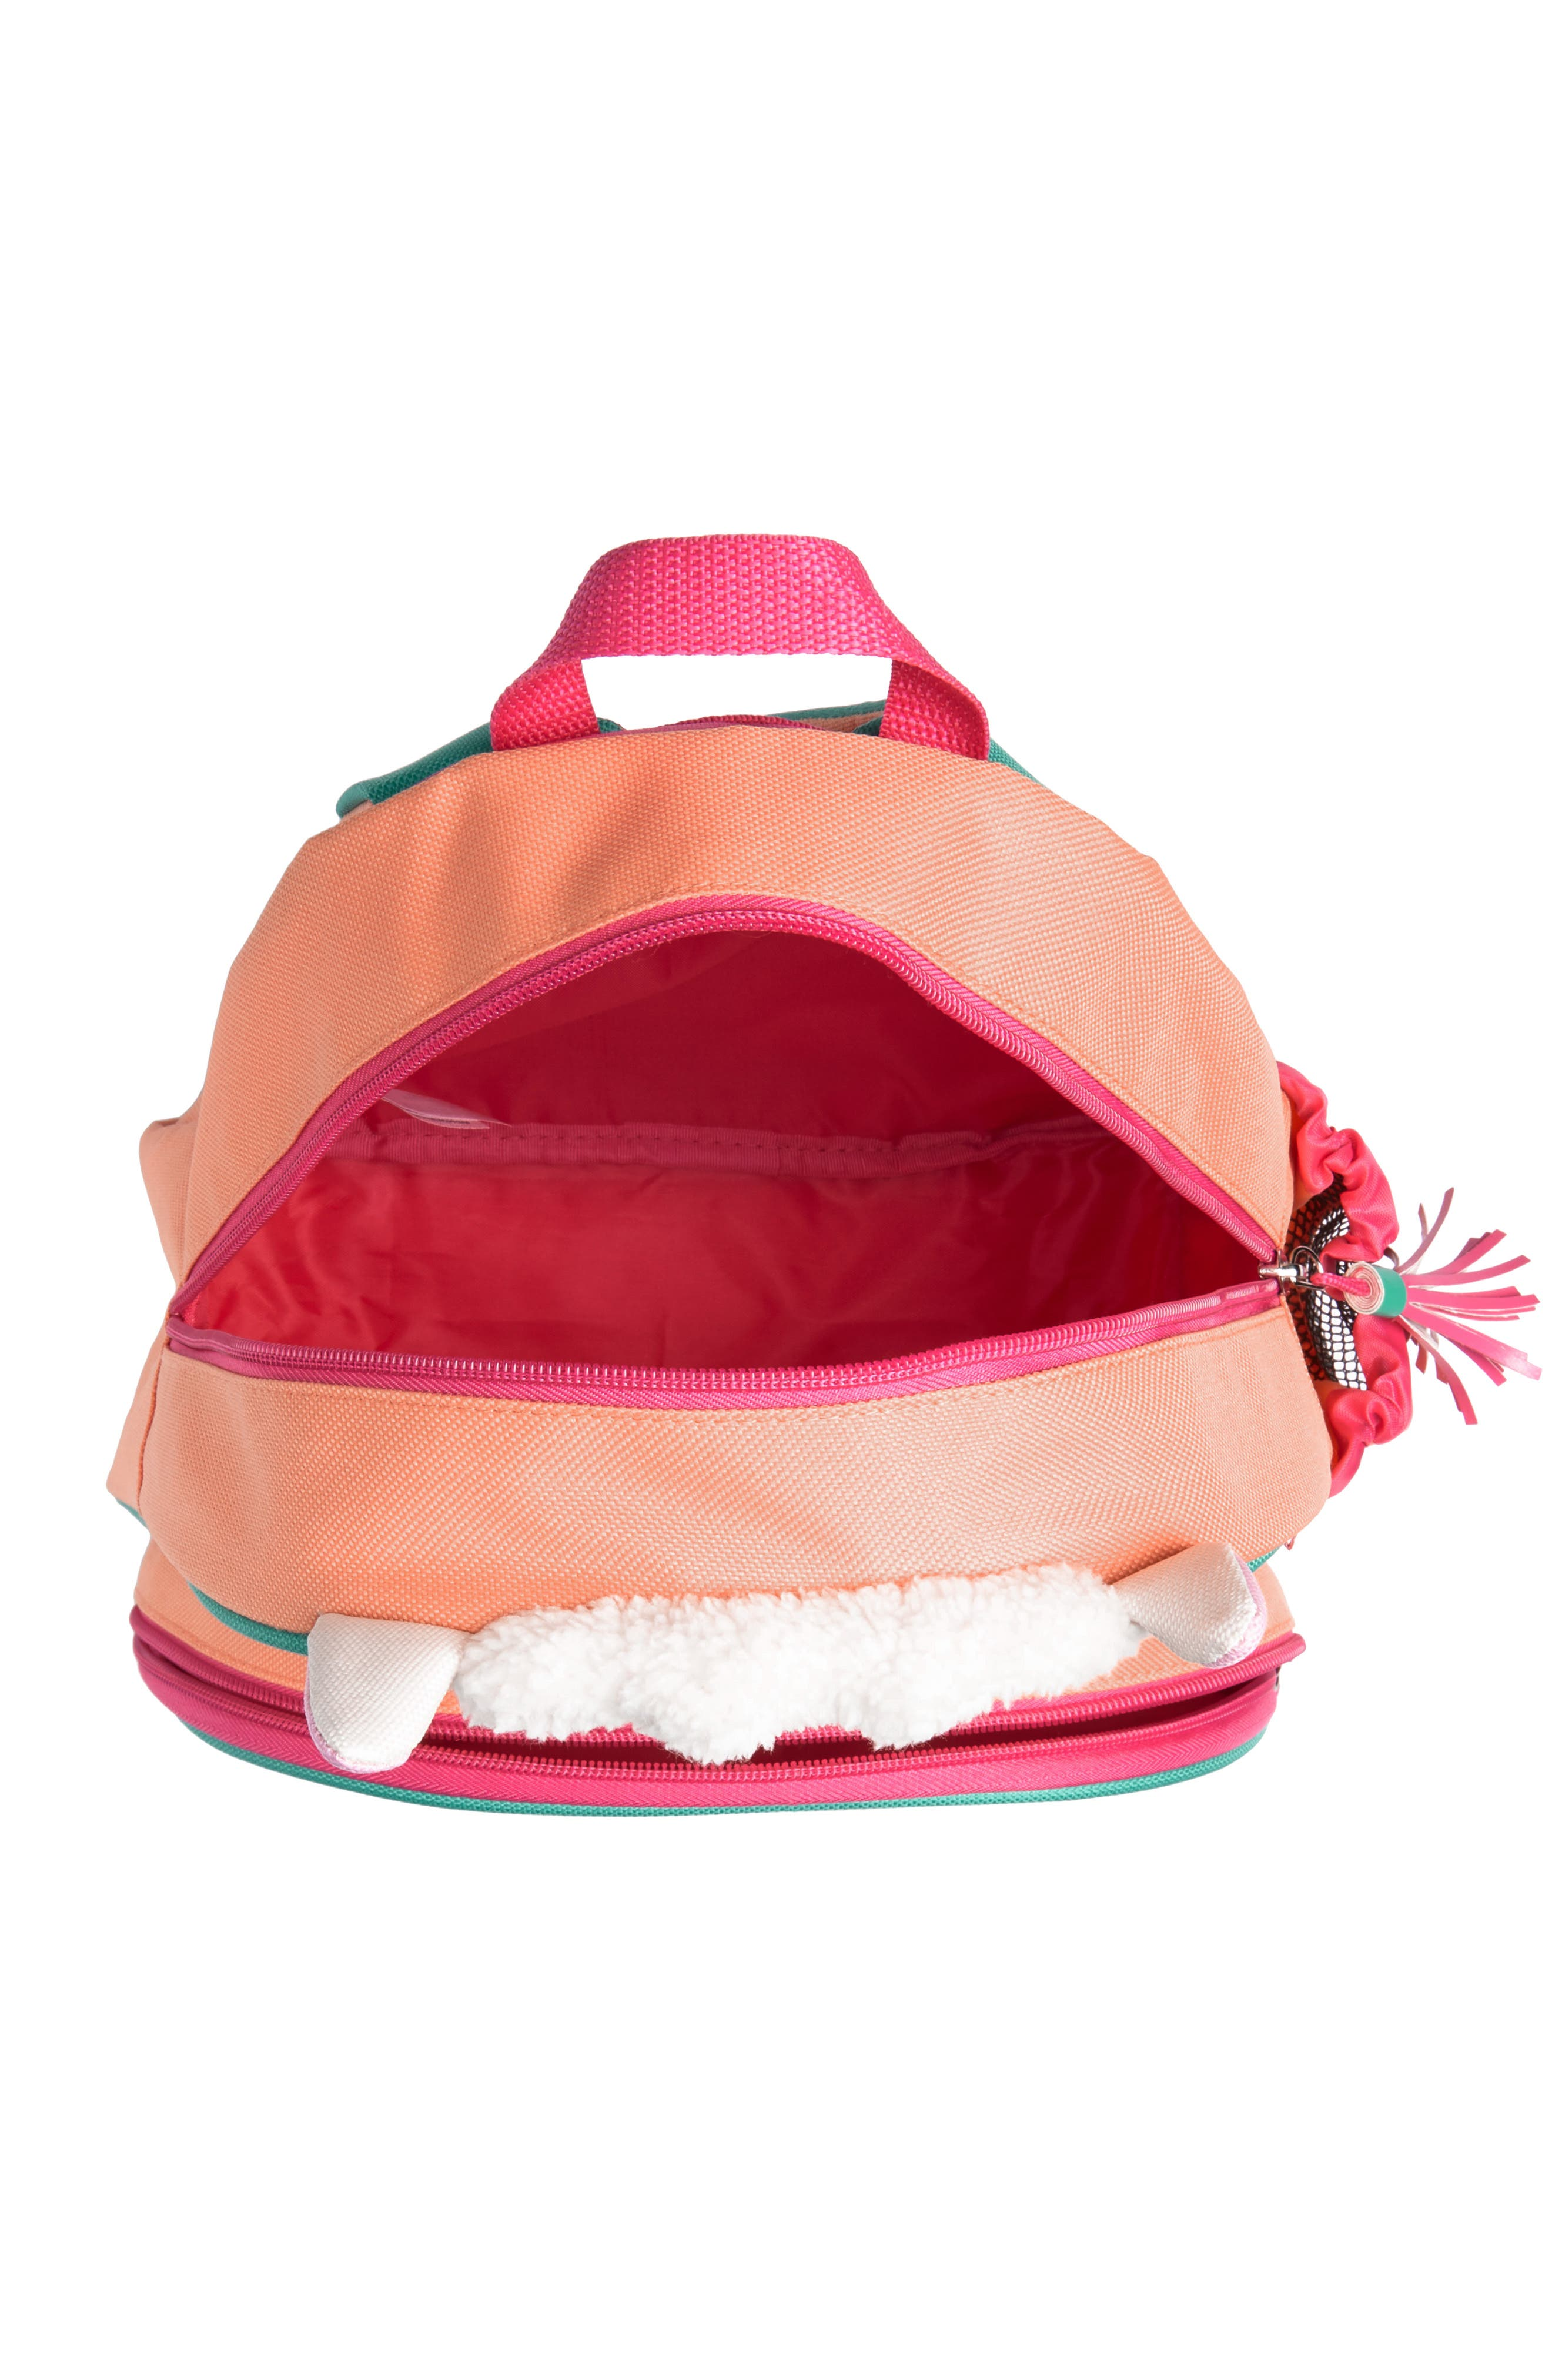 Zoo Pack Backpack,                             Alternate thumbnail 48, color,